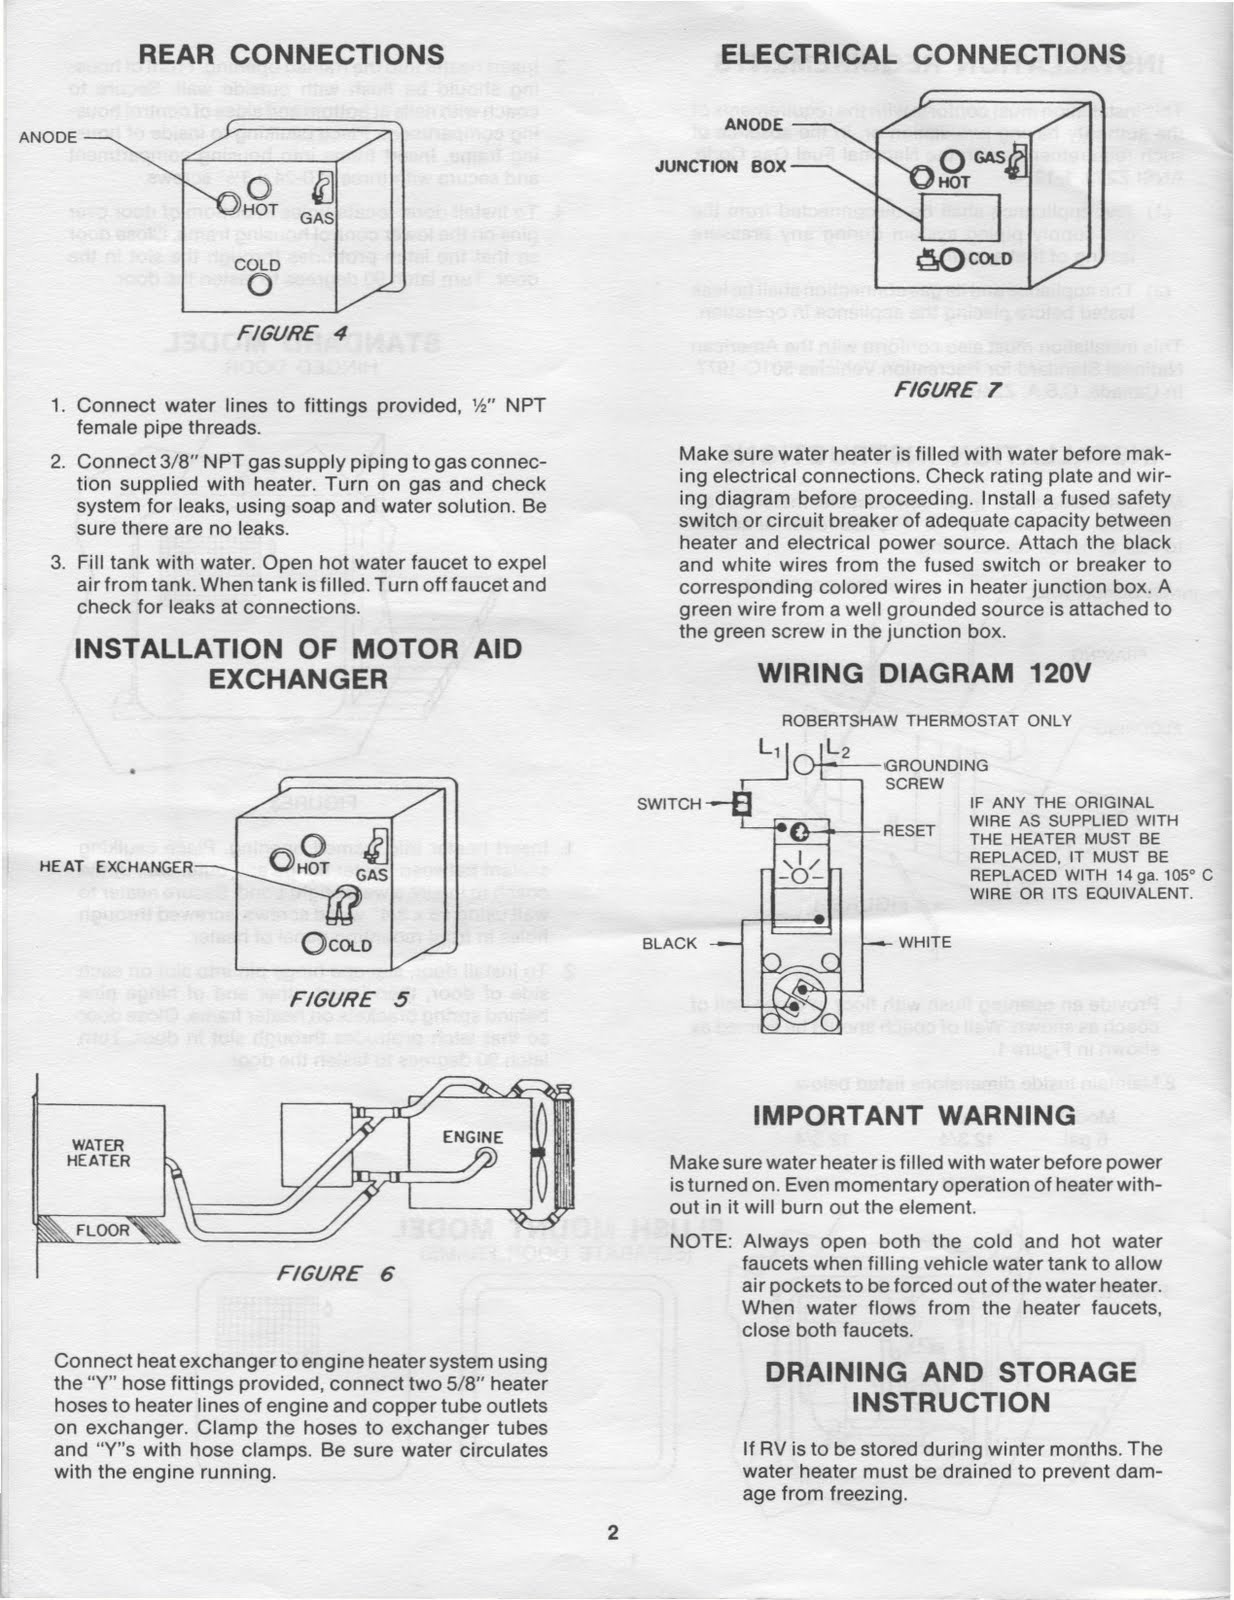 1848 wiring diagram for 79 dodge motorhome 1976 dodge motorhome rh diagram  stockimages us